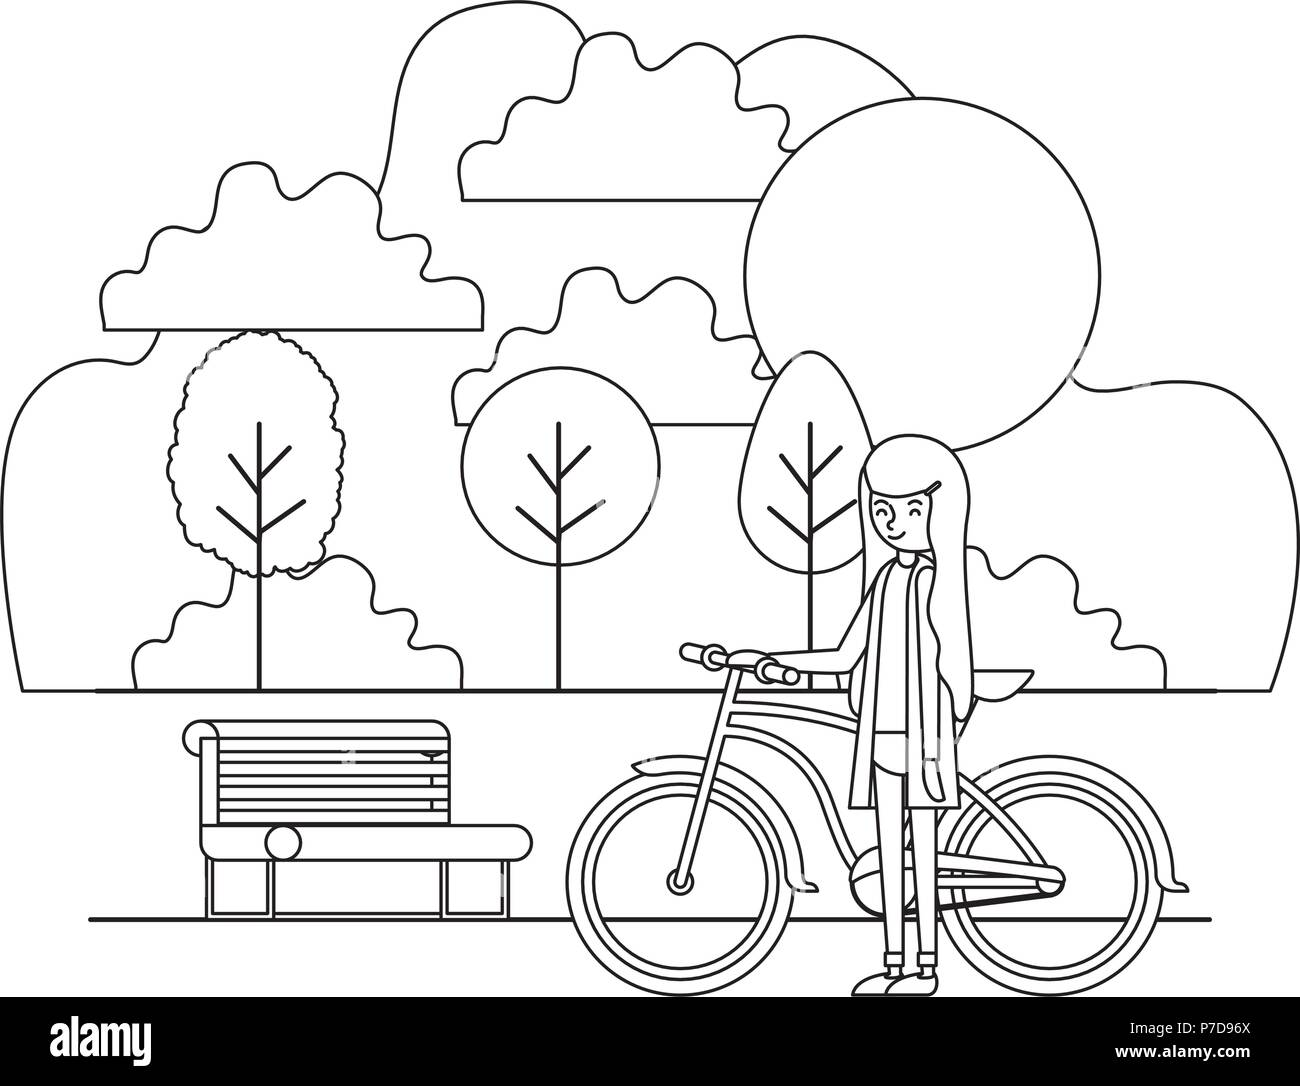 woman with bike black and white stock photos images alamy Old School Panhead Chopper woman in the park with bicycle stock image